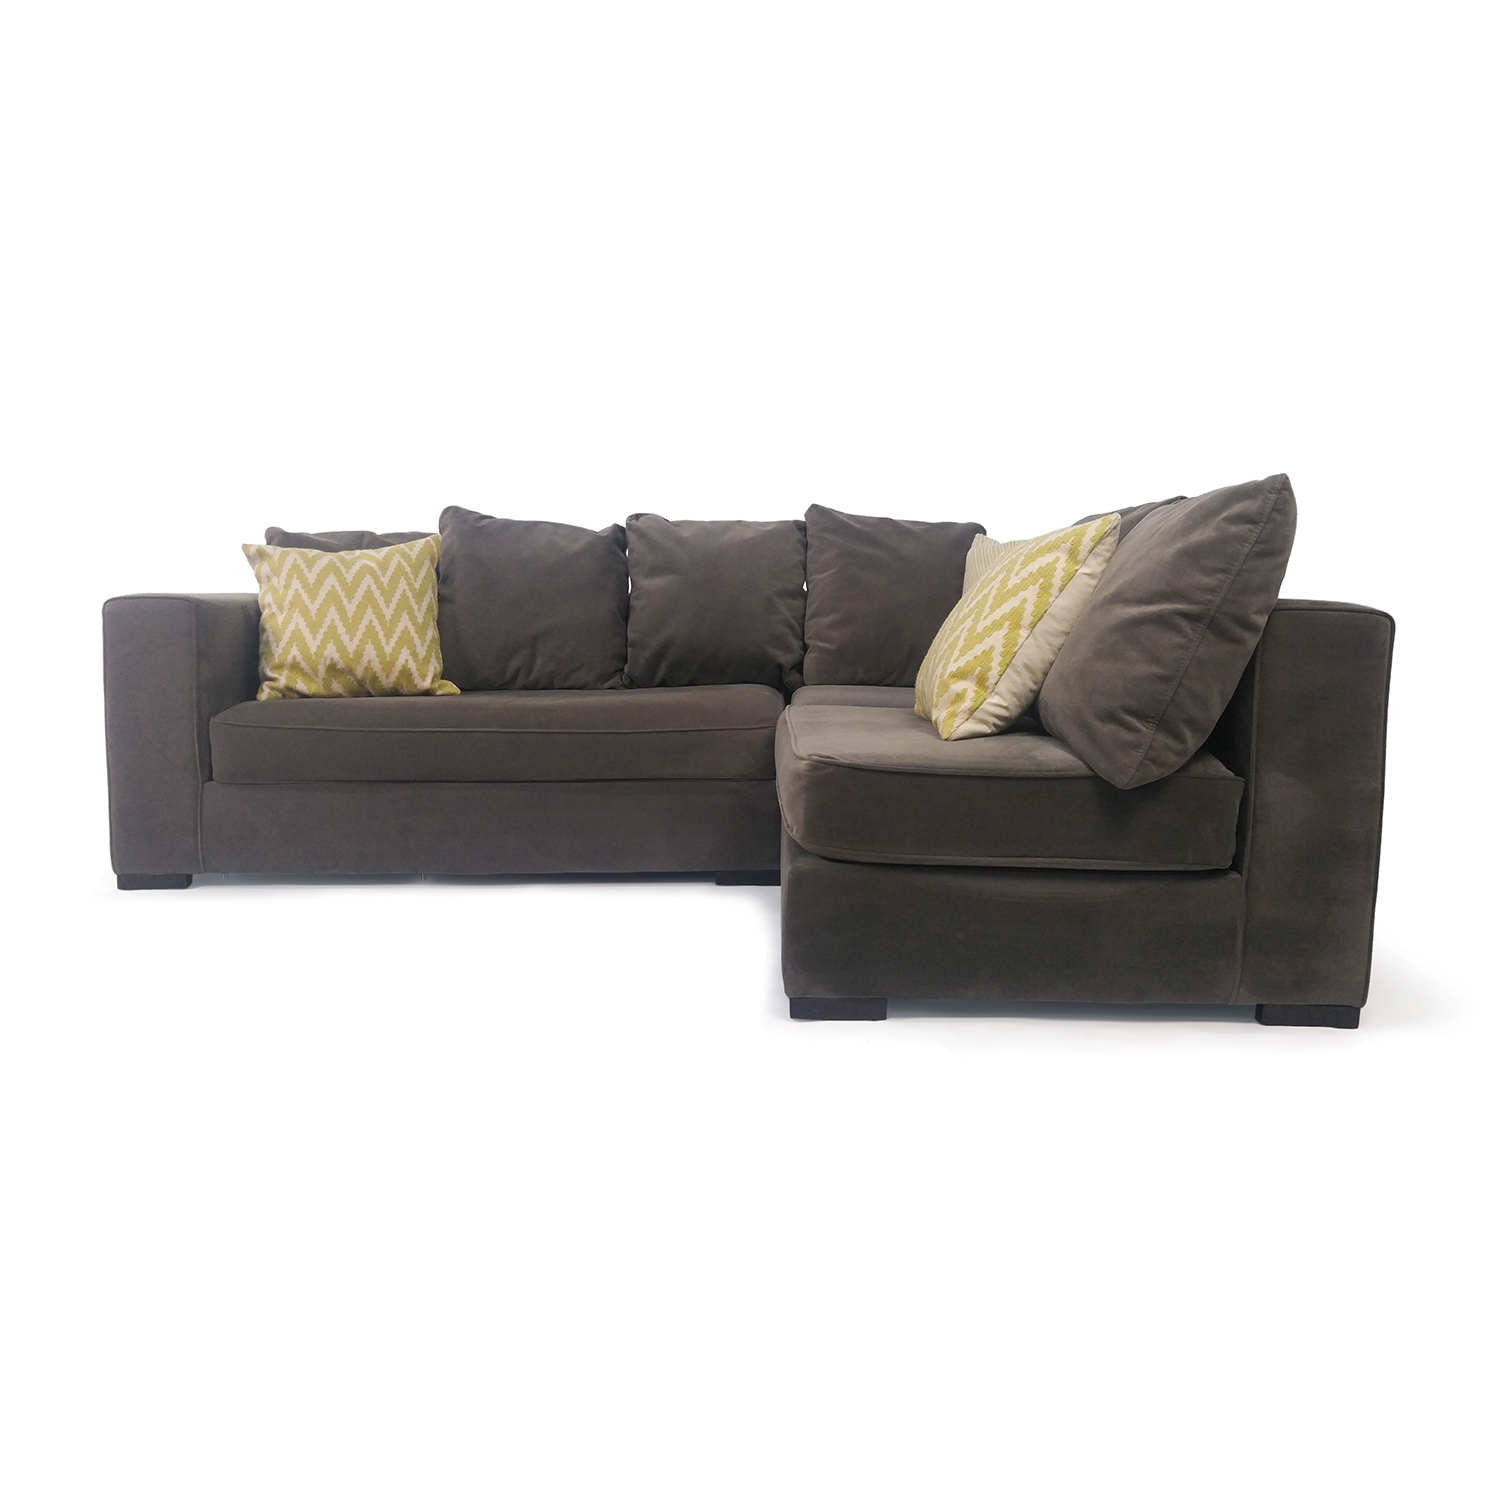 West Elm West Elm Modular Gray Sectional on sale  sc 1 st  Furnishare : used sectionals - Sectionals, Sofas & Couches